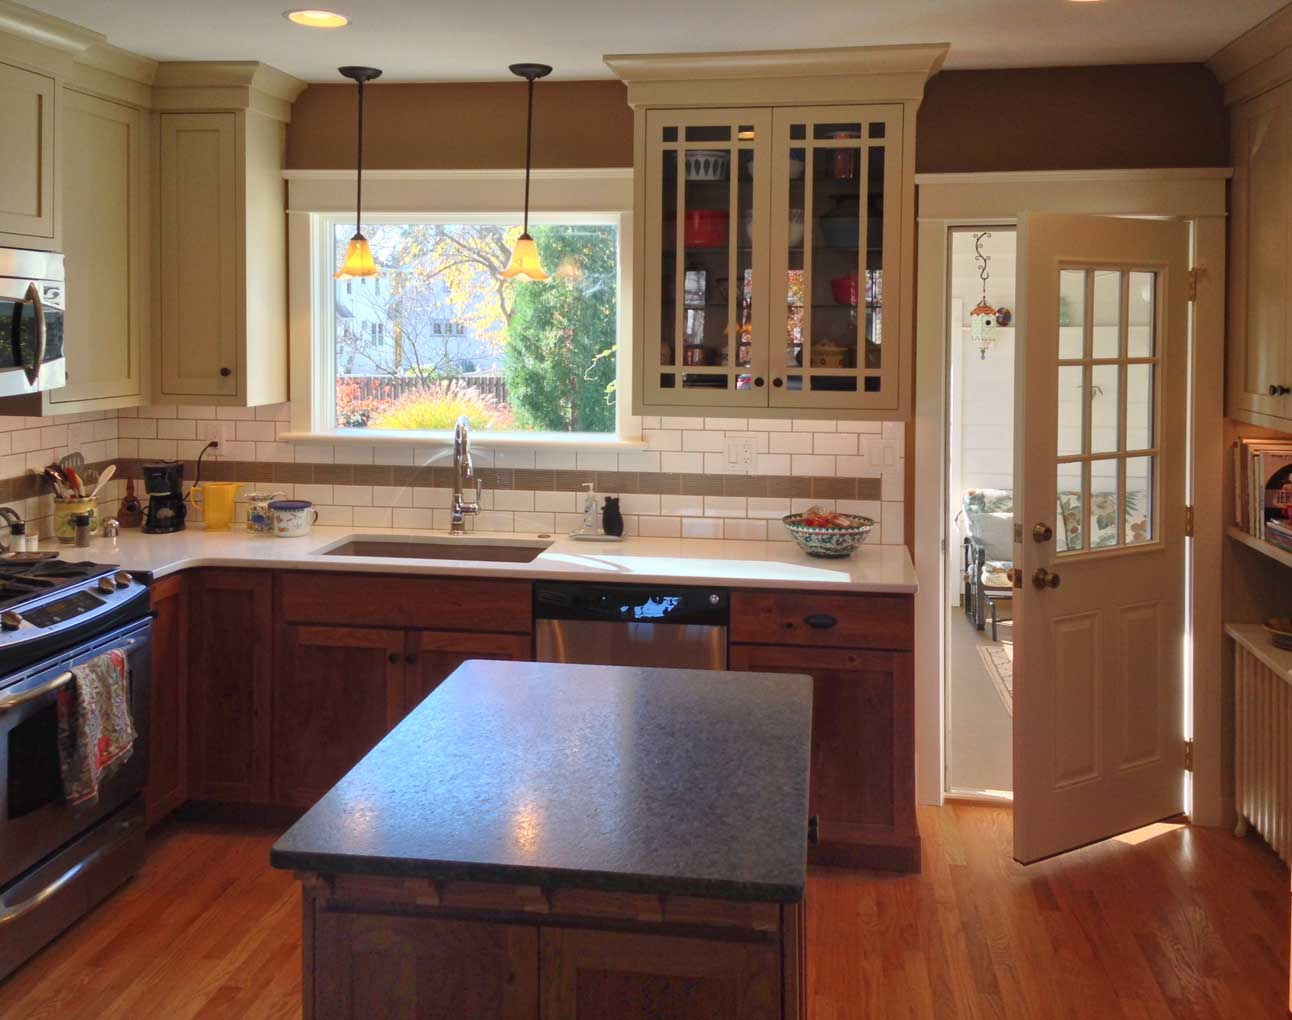 camp hill s colonial colonial kitchen sink Share